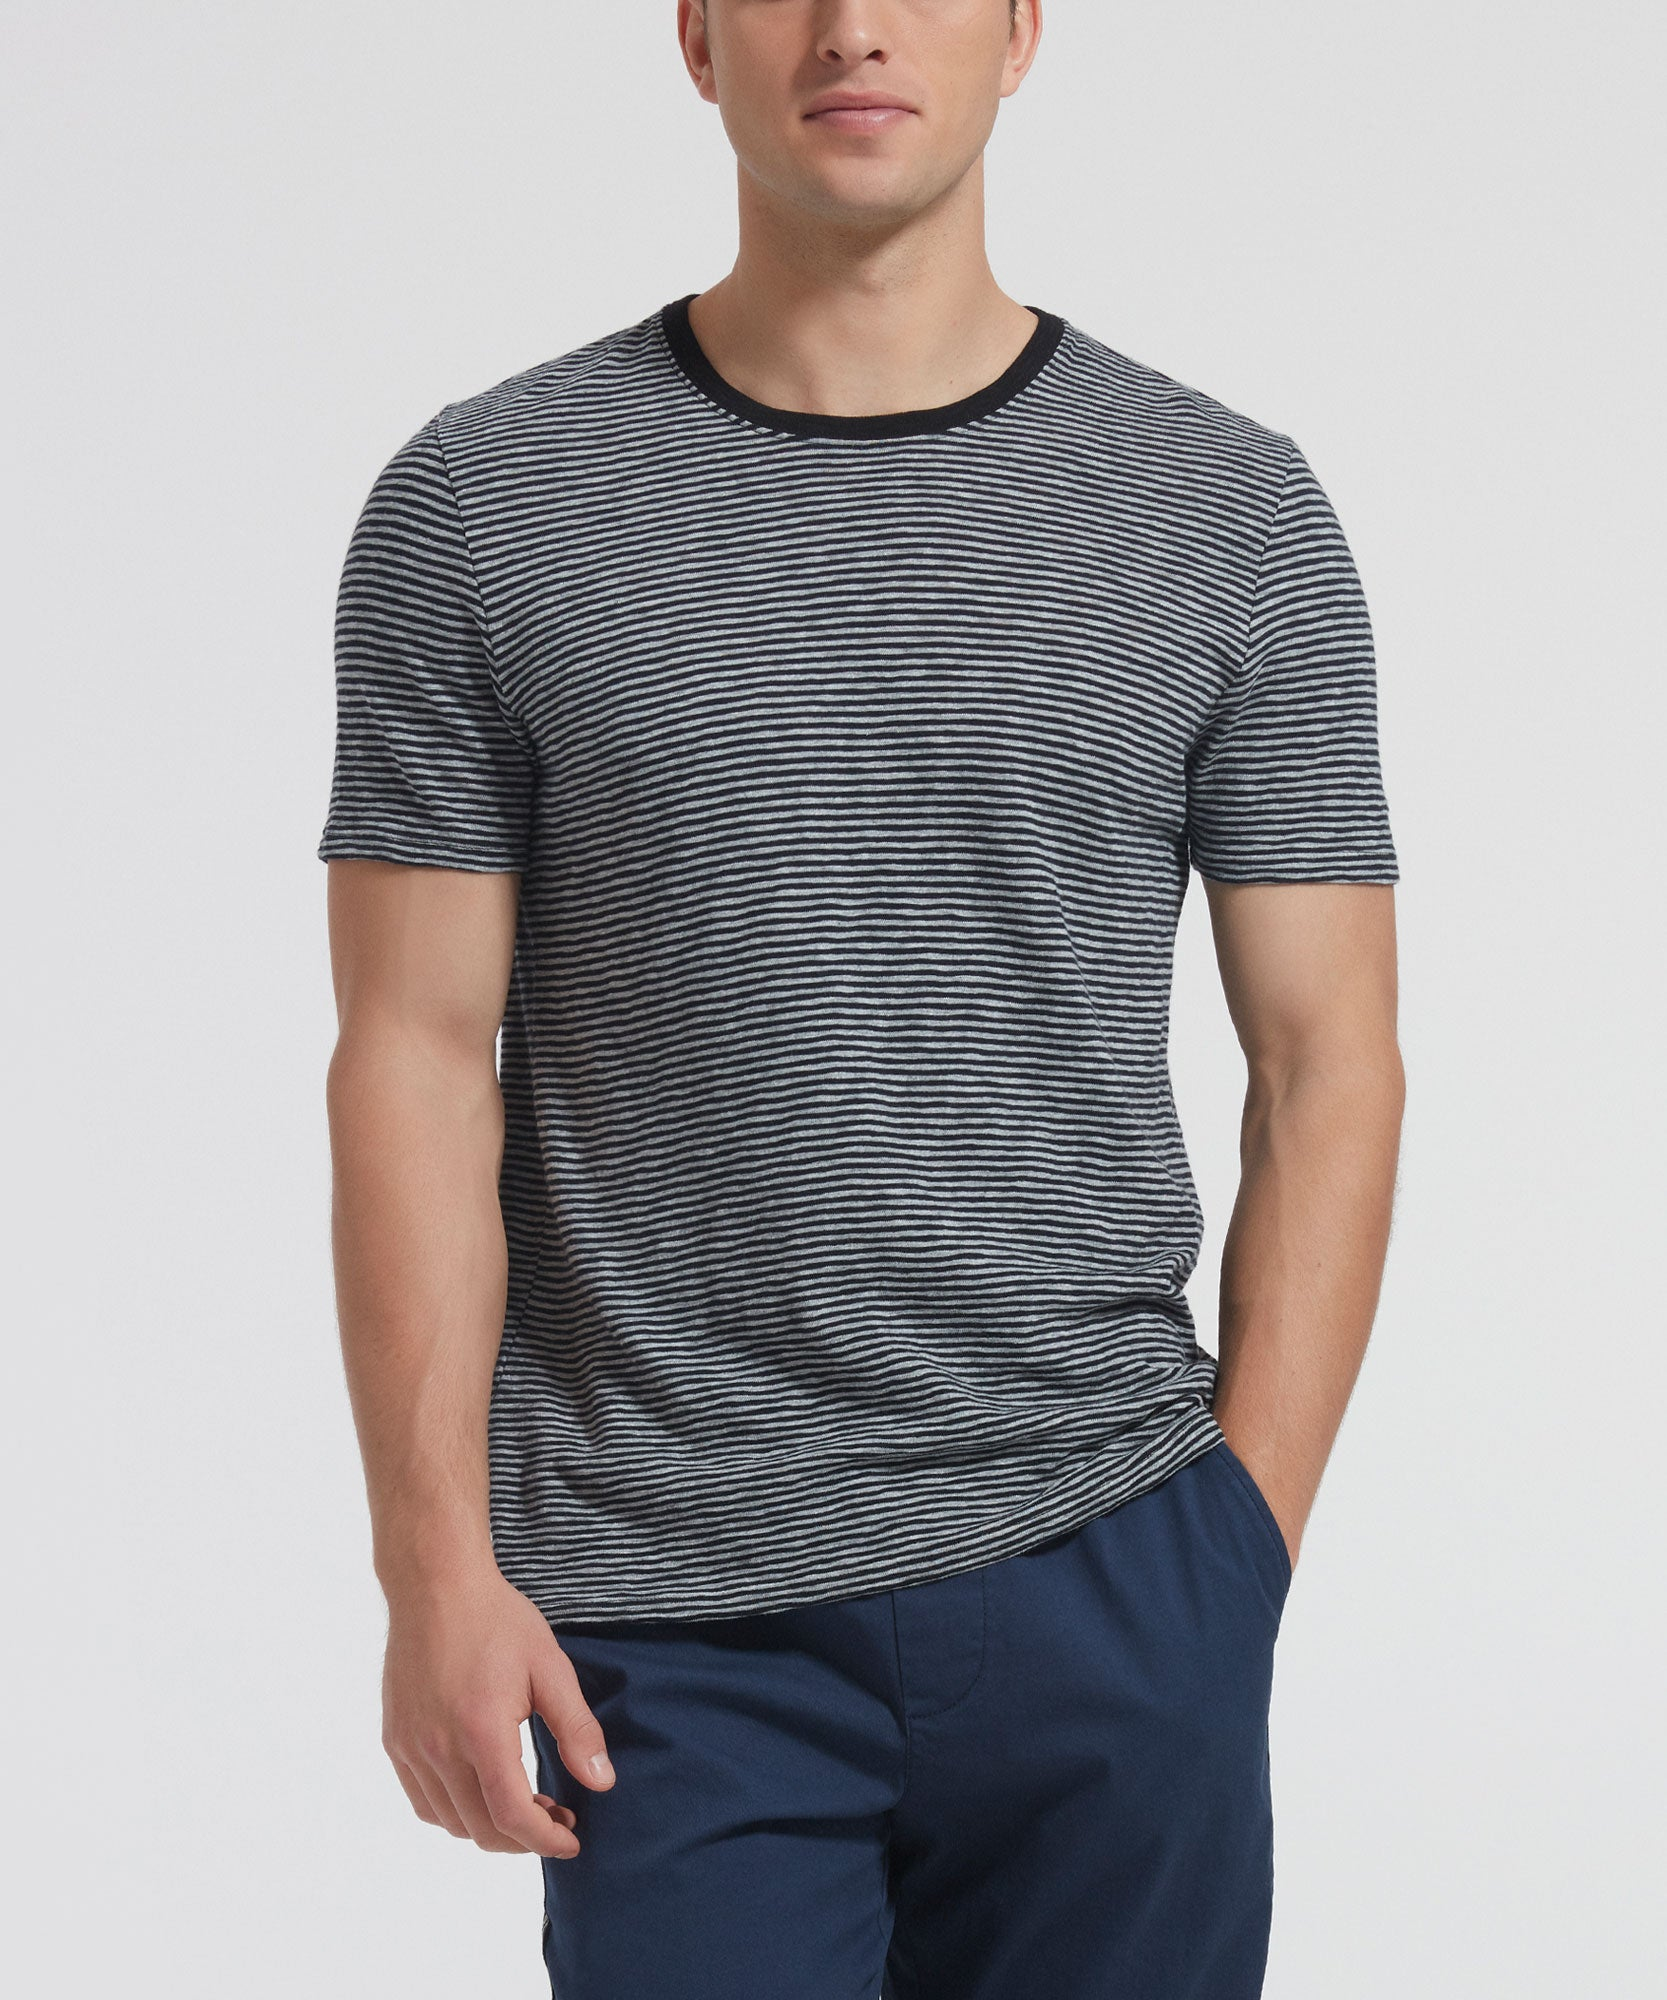 Grey and Black Striped Jersey Crew Neck Tee - Men's Short Sleeve T-shirt by ATM Anthony Thomas Melillo